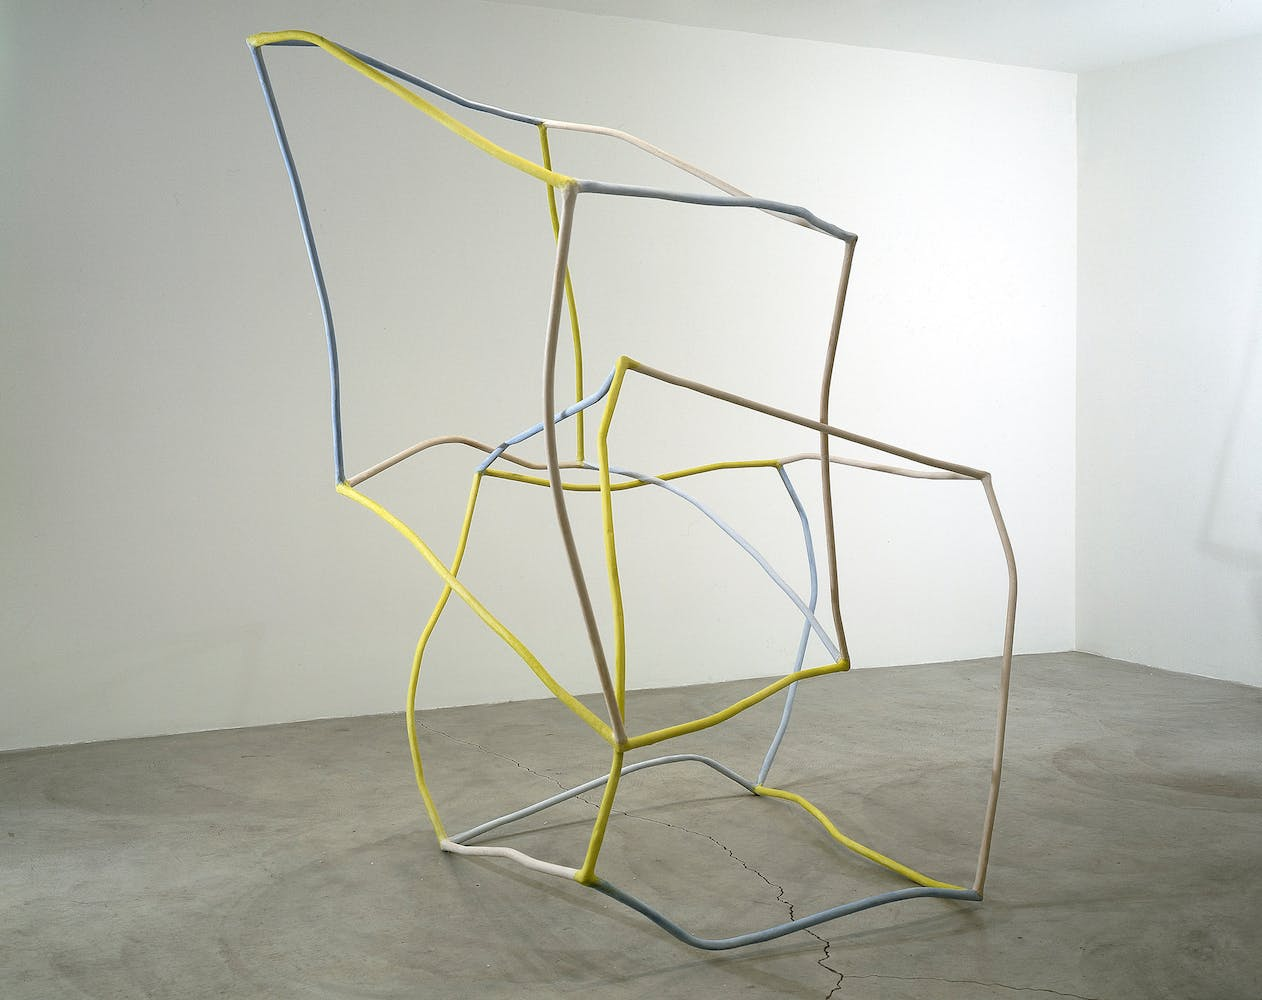 Thin crooked sculpture in the shape of two intersecting, distorted cubes in yellow and blue